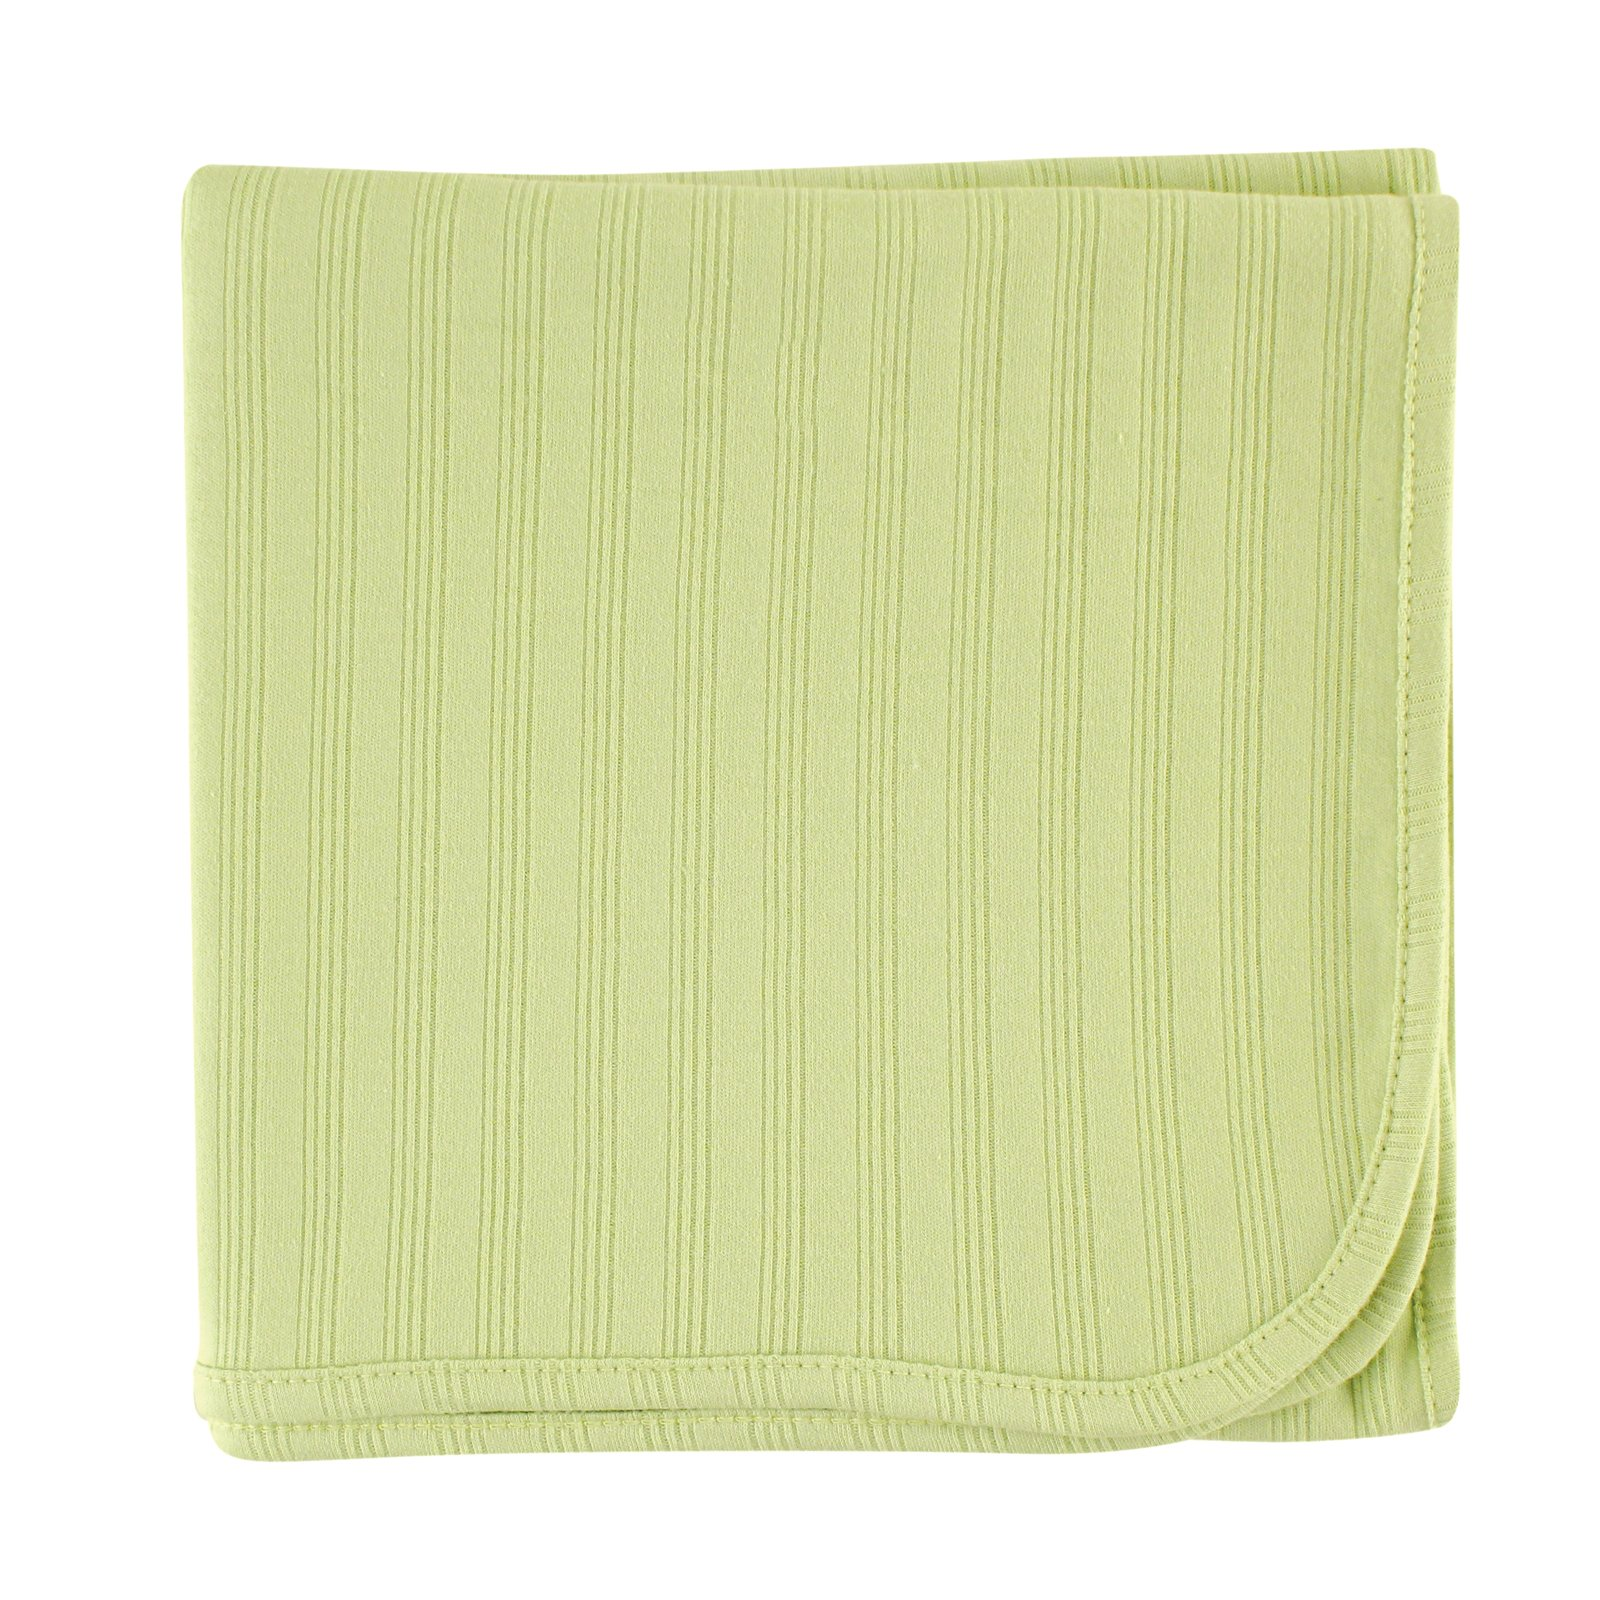 Touched by Nature Organic Cotton Receiving Blanket, Celery, 40x40